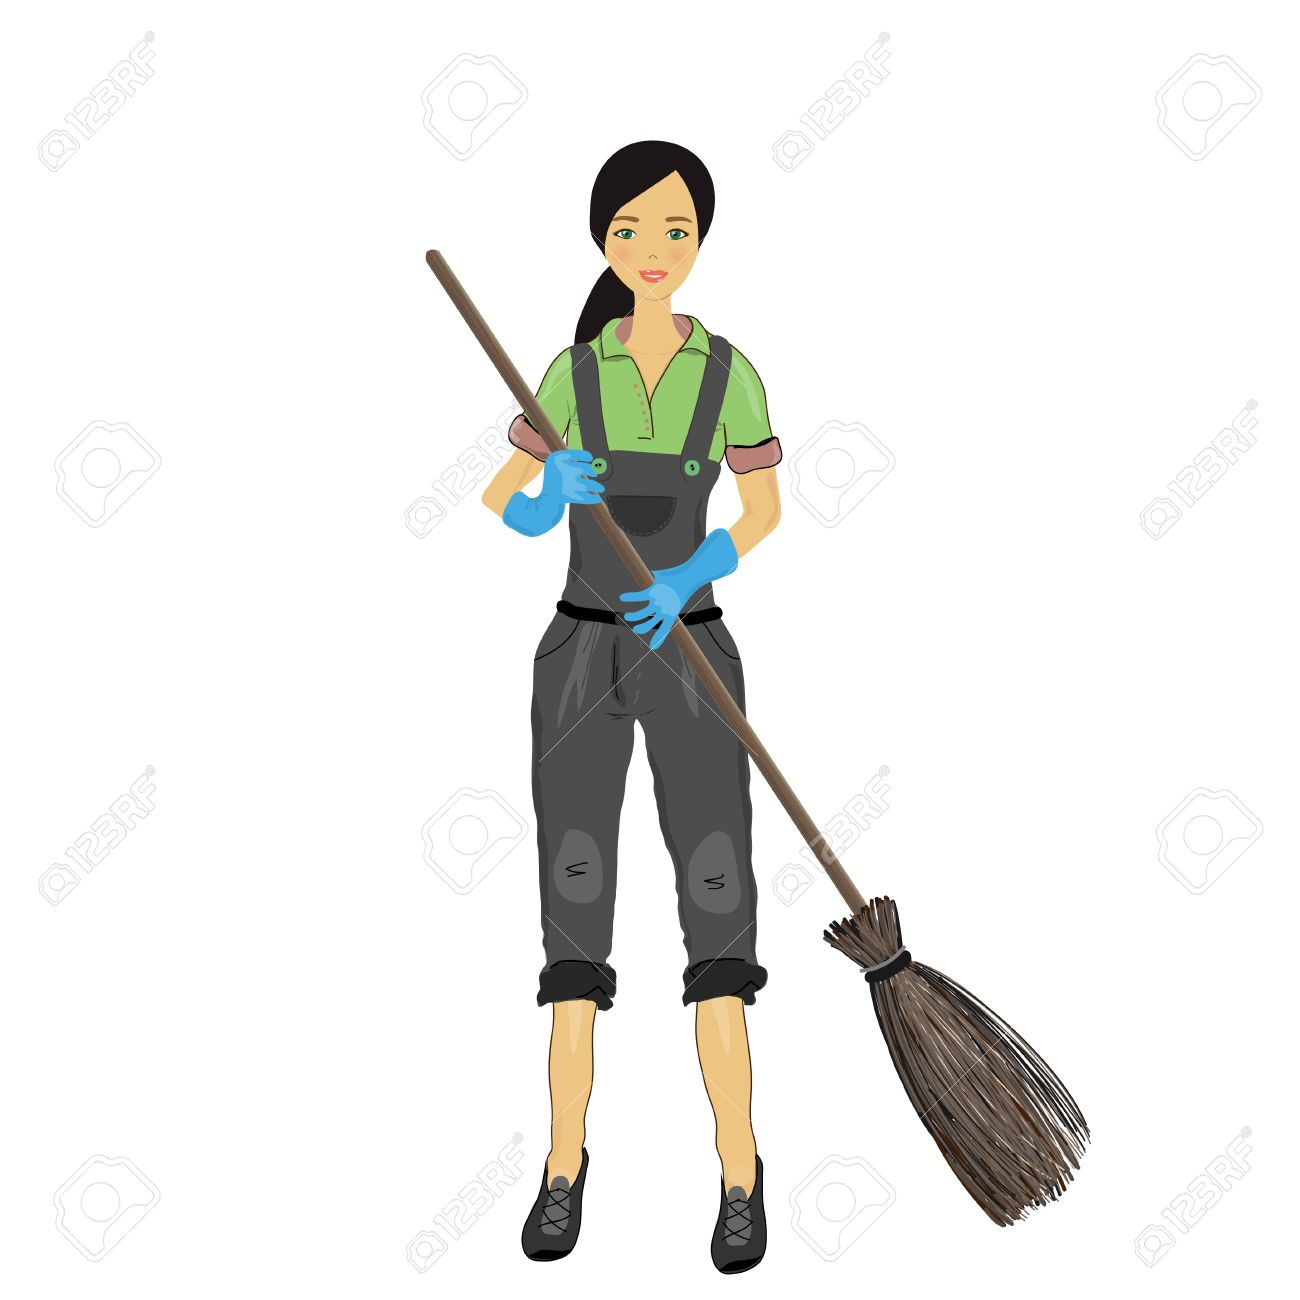 Clipart of a woman on a broom vector library library Clipart of a woman on a broom - ClipartFox vector library library